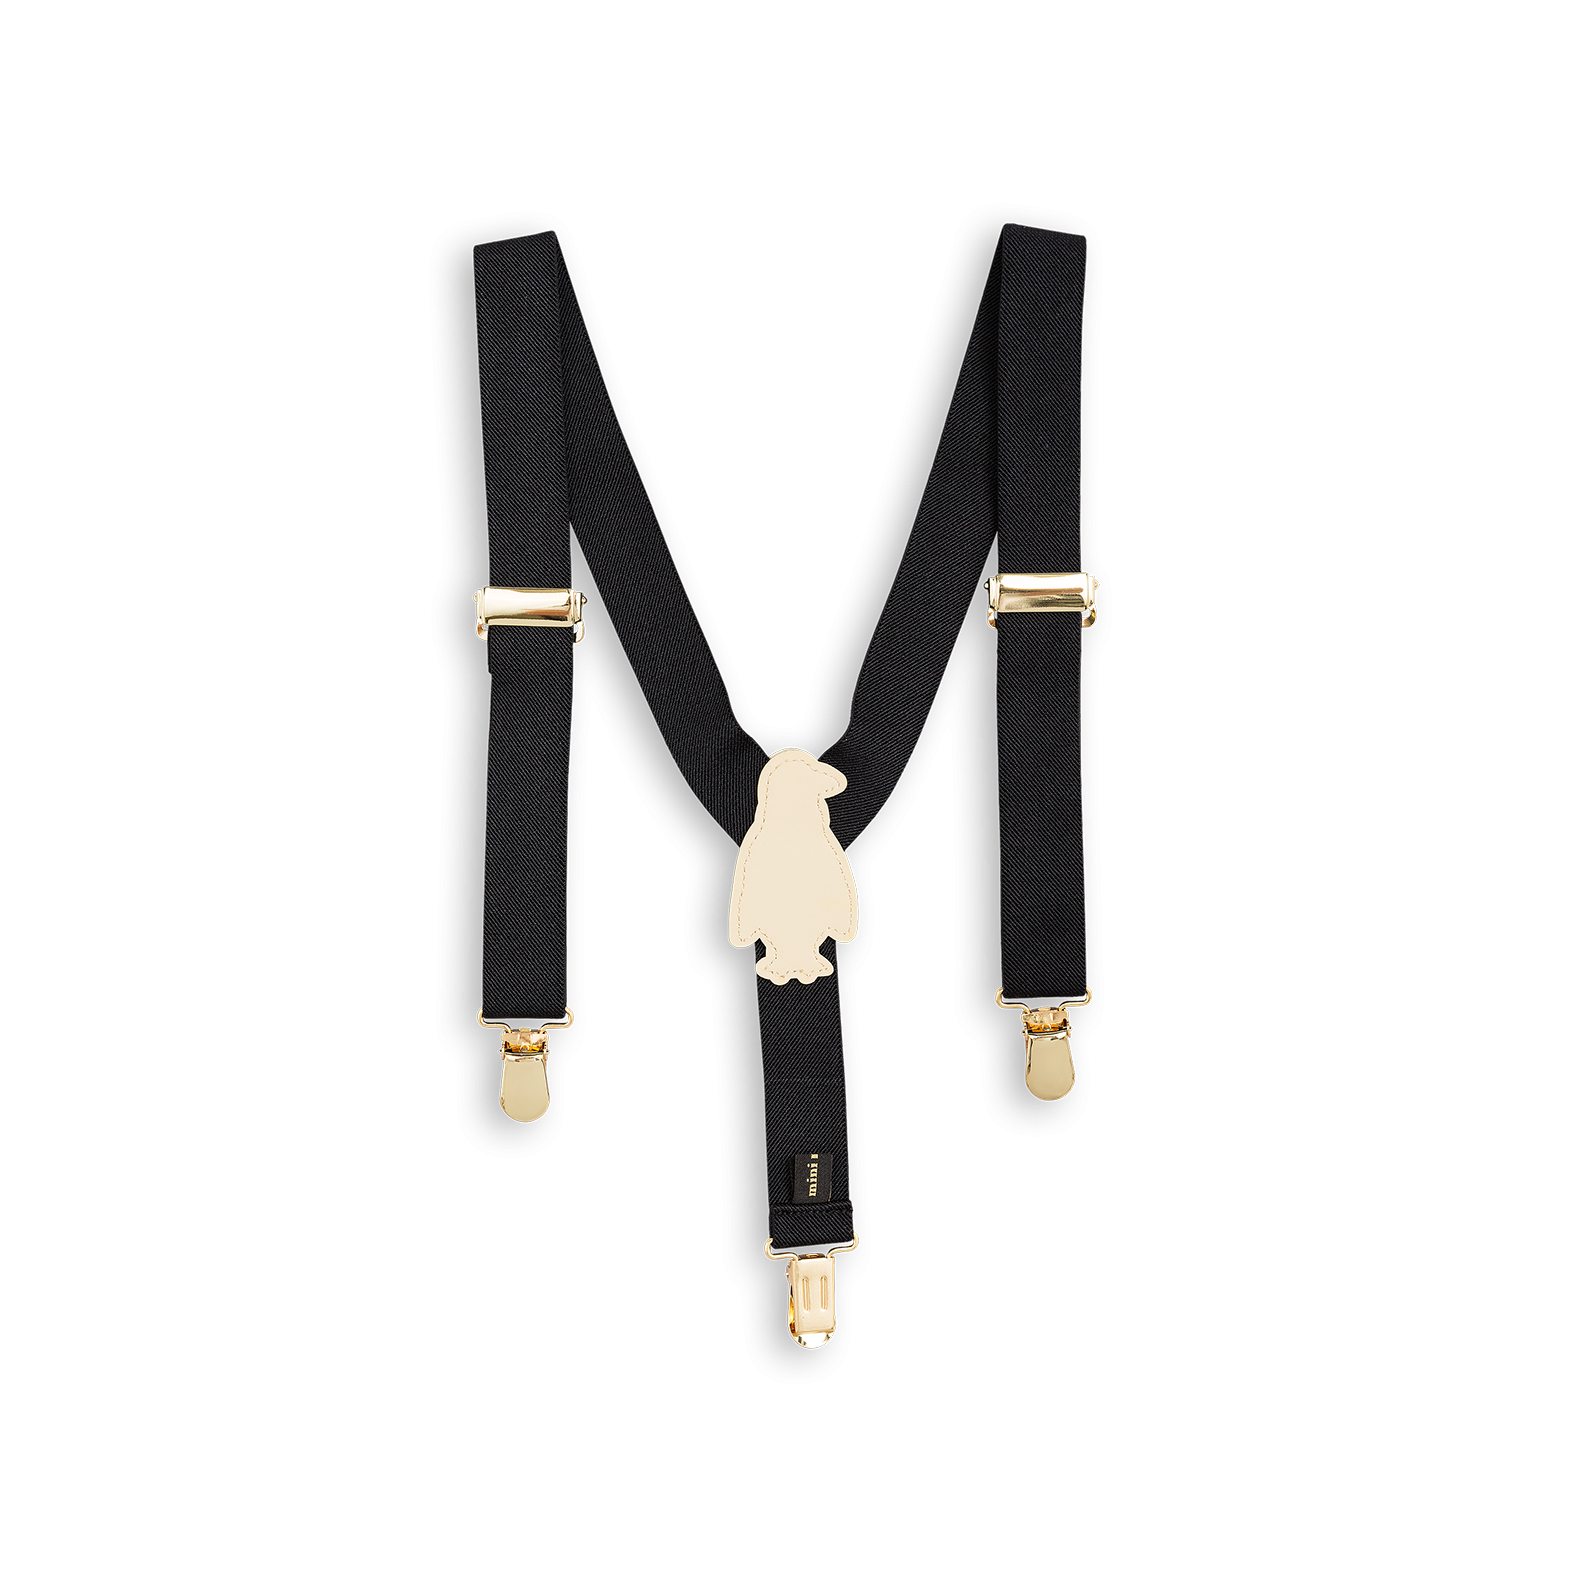 Mini Rodini Penguin Braces Suspenders on DLK | designlifekids.com